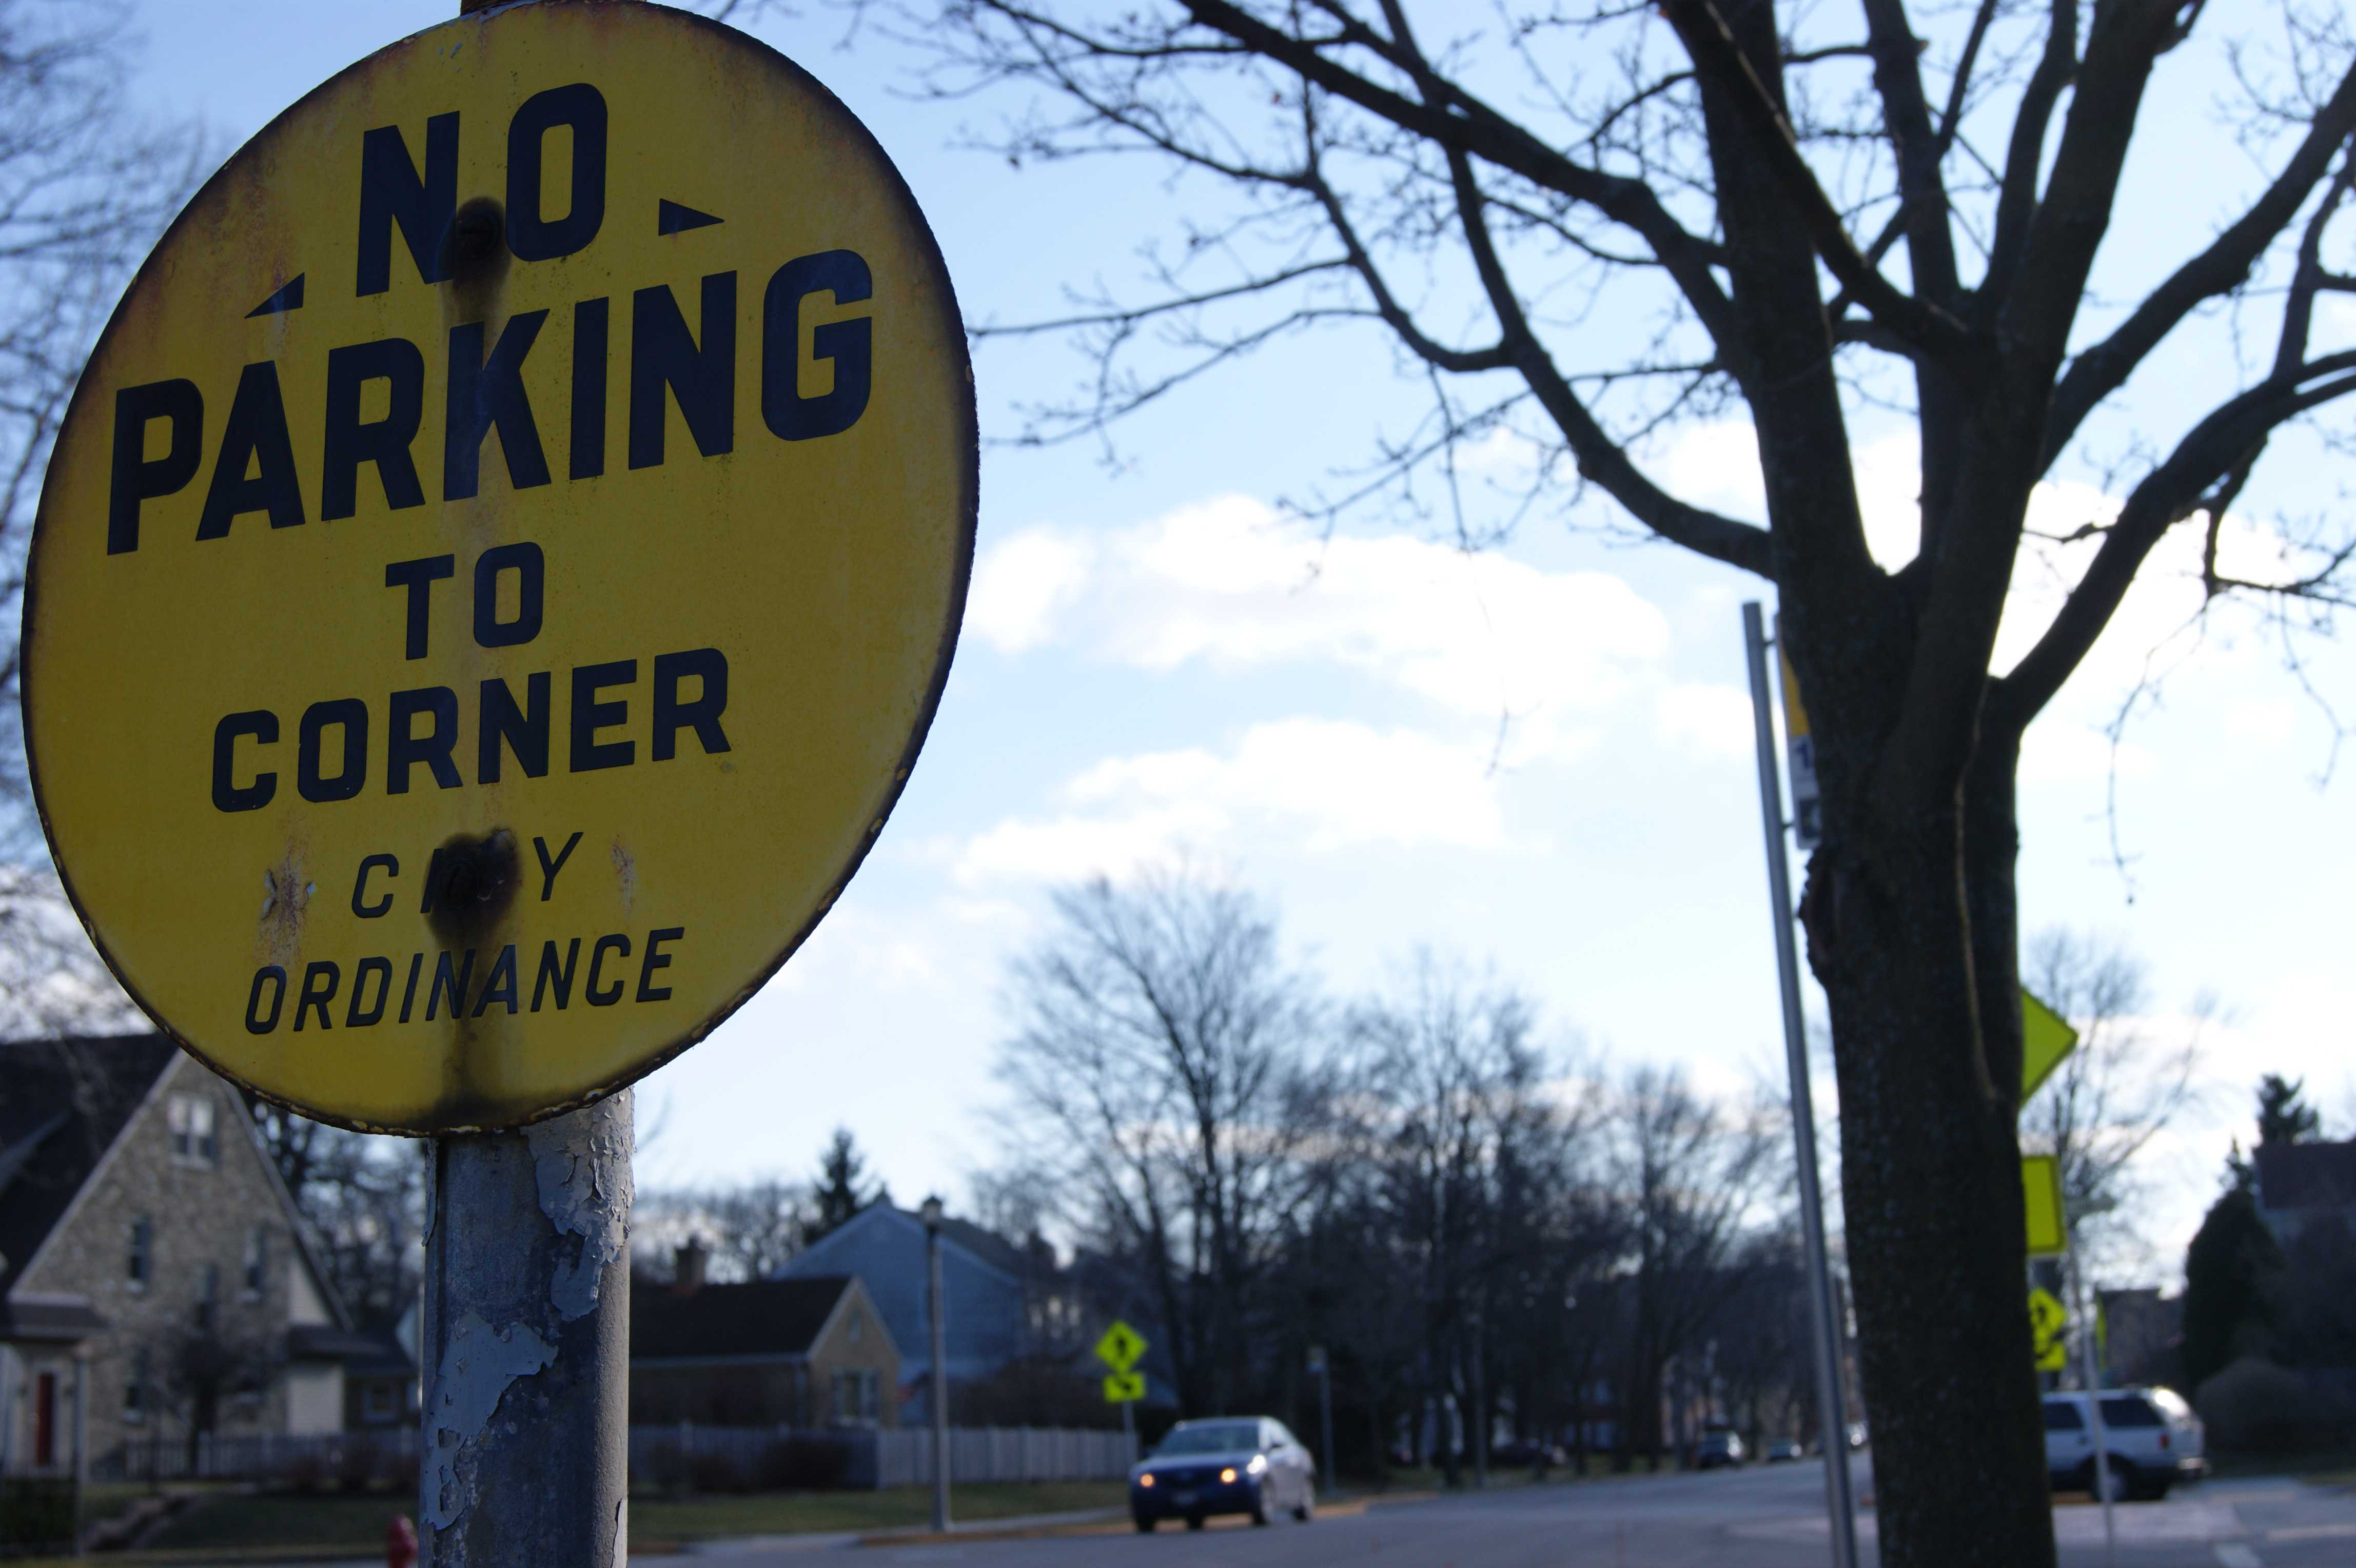 No Parking, By City Ordinance